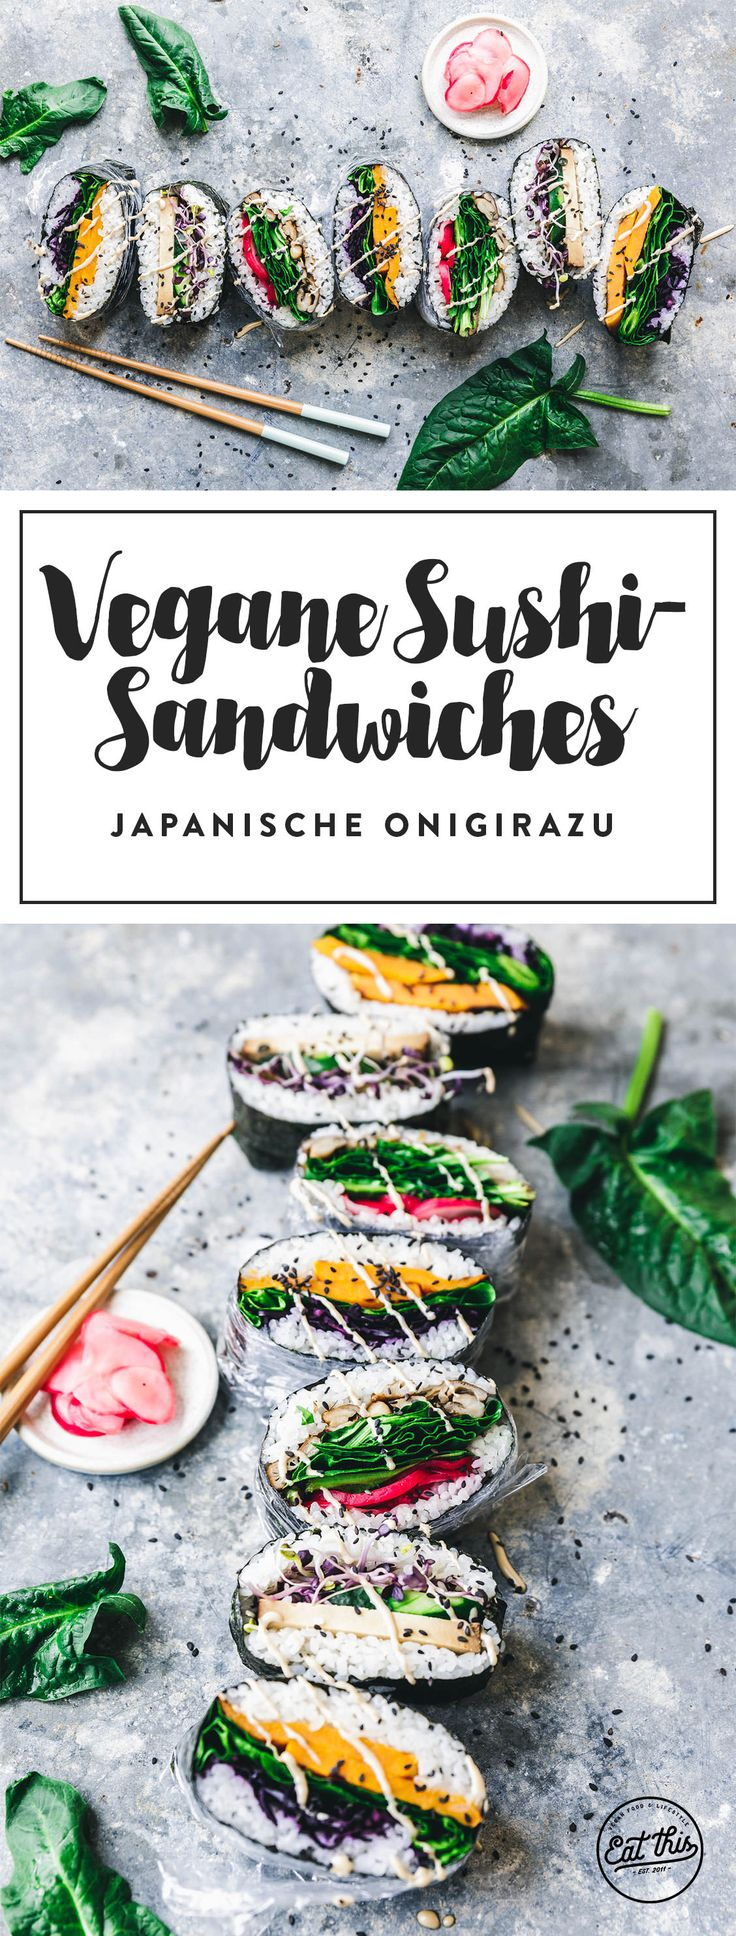 Vegane Sushi-Sandwiches – japanische Onigirazu Come and see our new website at bakedcomfortfood.com